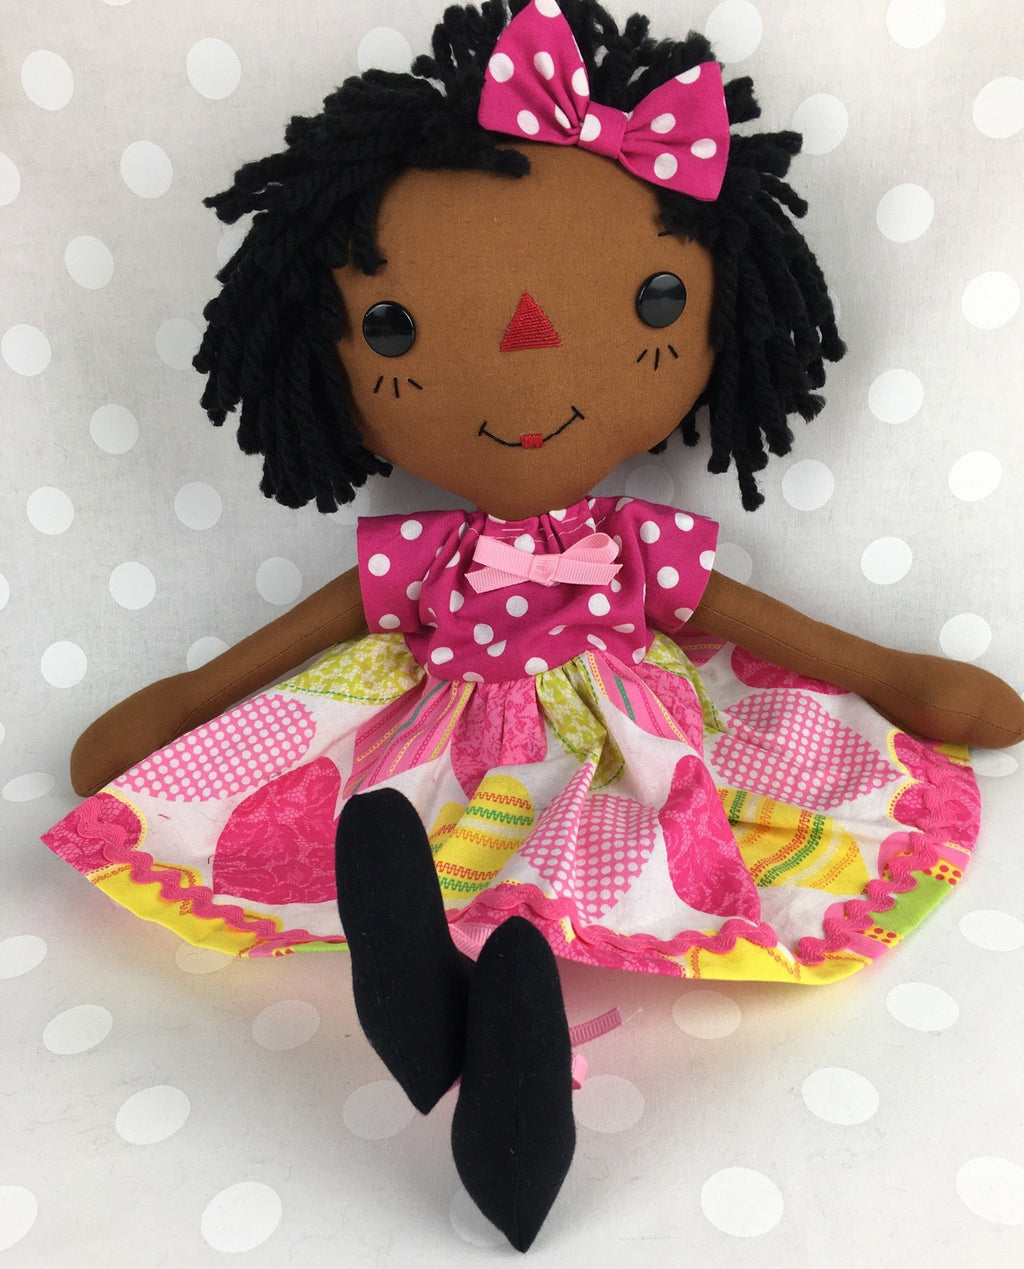 Raggedy Ann Doll - Black Rag Doll - Black Baby Doll - African American Doll - Cinnamon Annie Doll - Birthday Gift for Girls - Girls Room